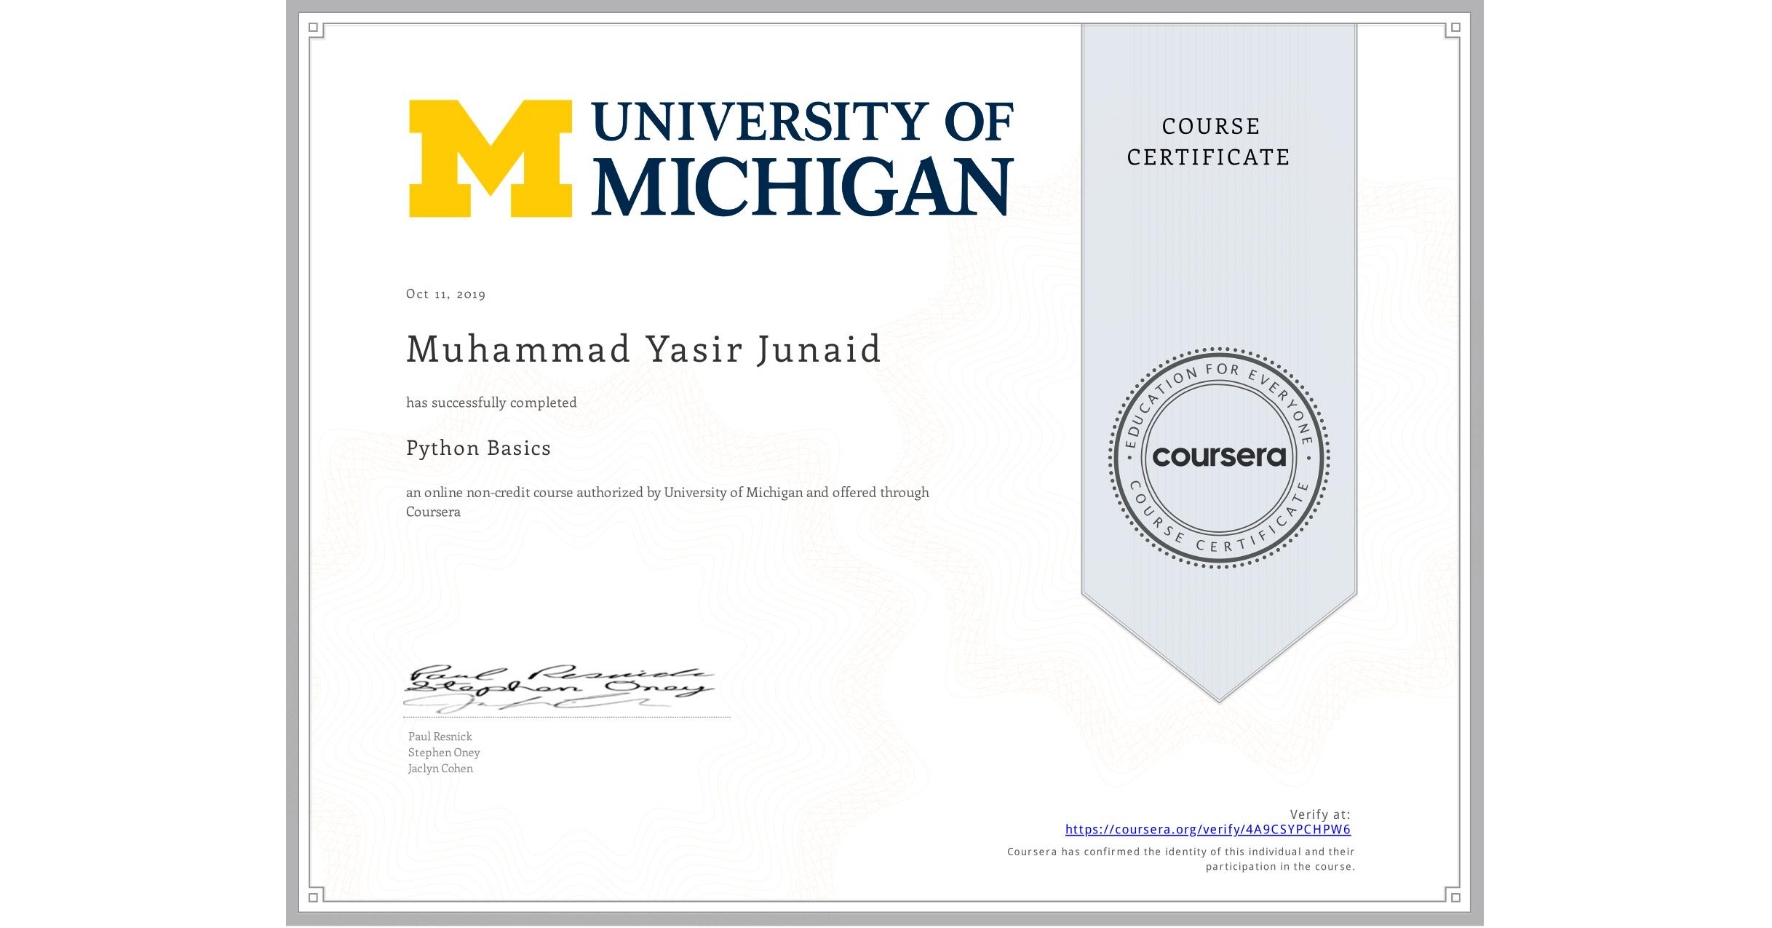 View certificate for Muhammad Yasir Junaid, Python Basics, an online non-credit course authorized by University of Michigan and offered through Coursera